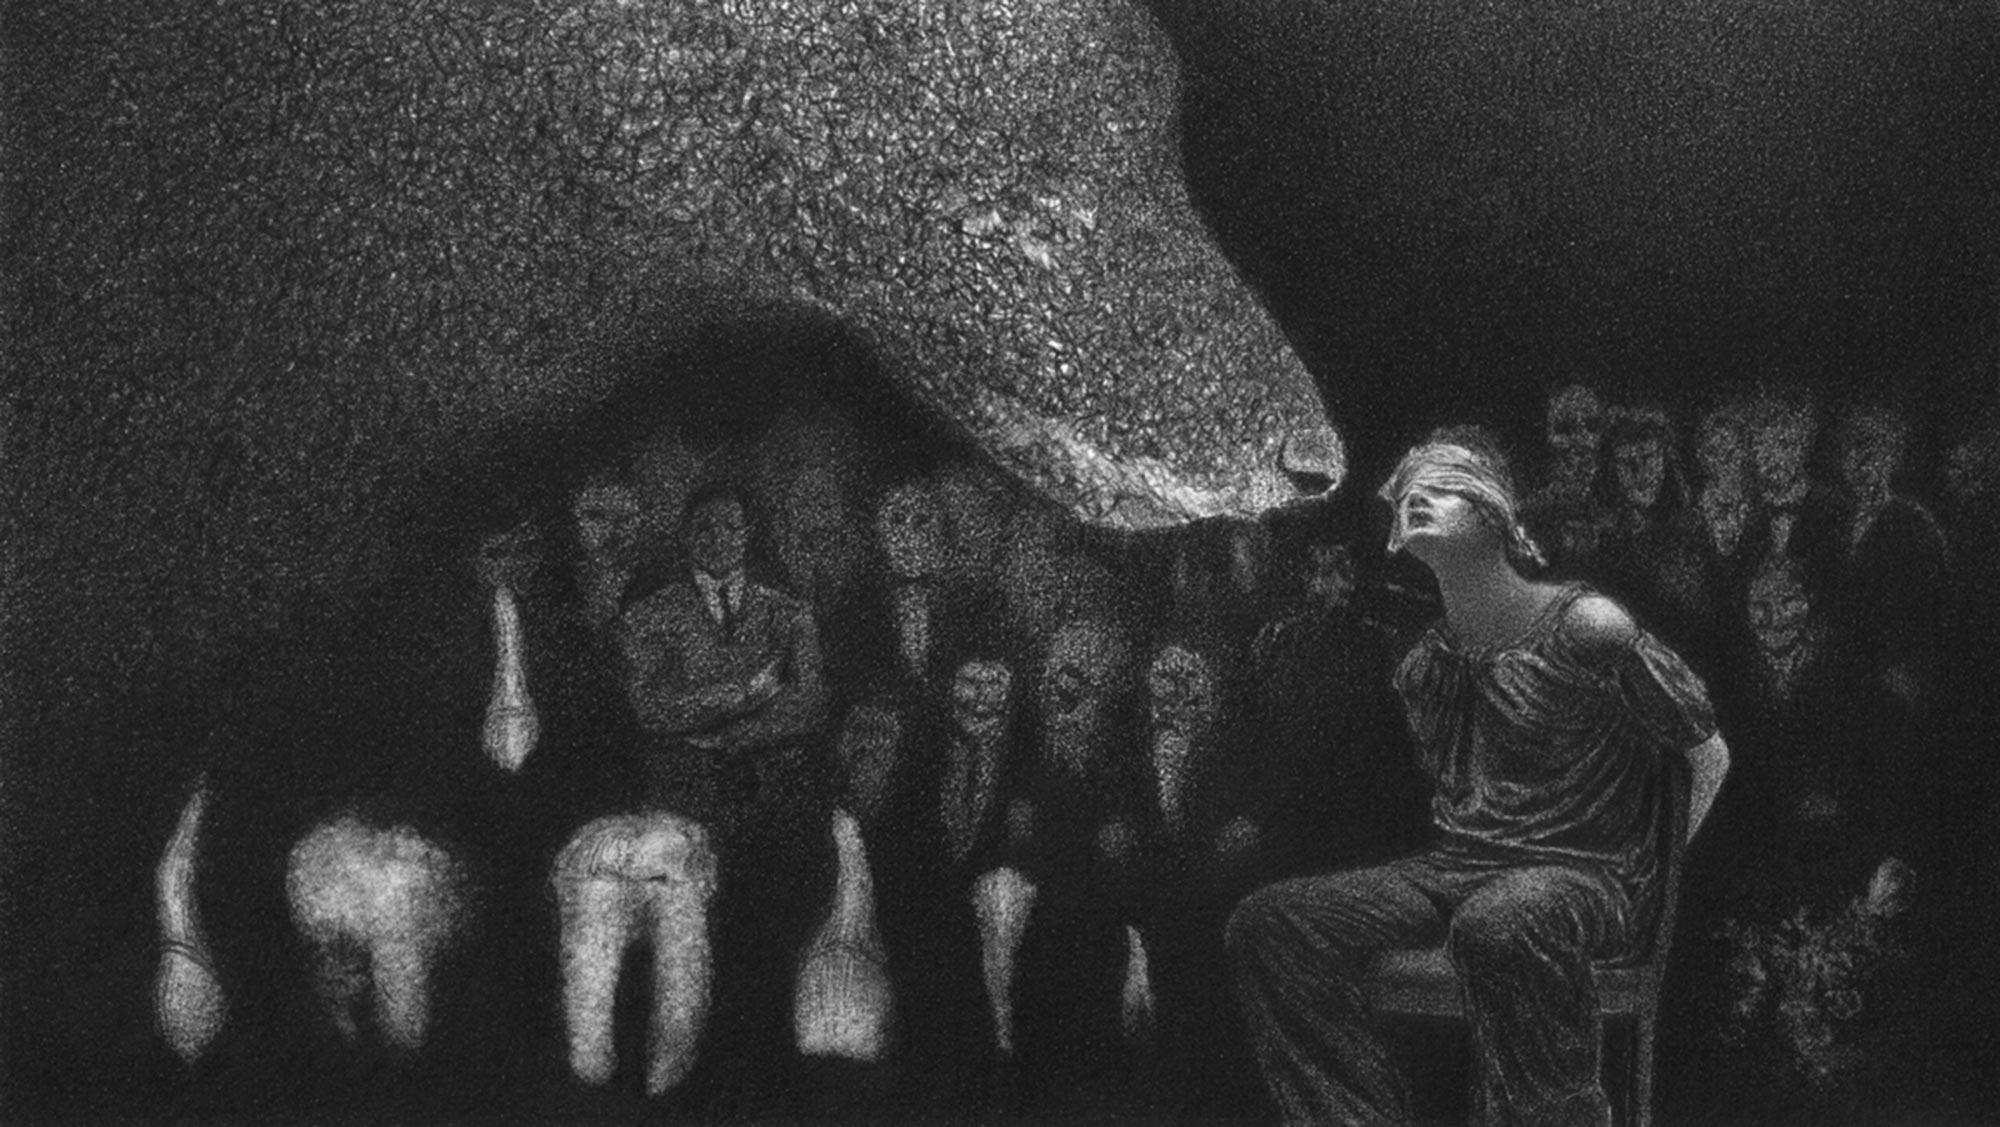 Surreal Graphite Drawings Meditate on the Nature of Pain